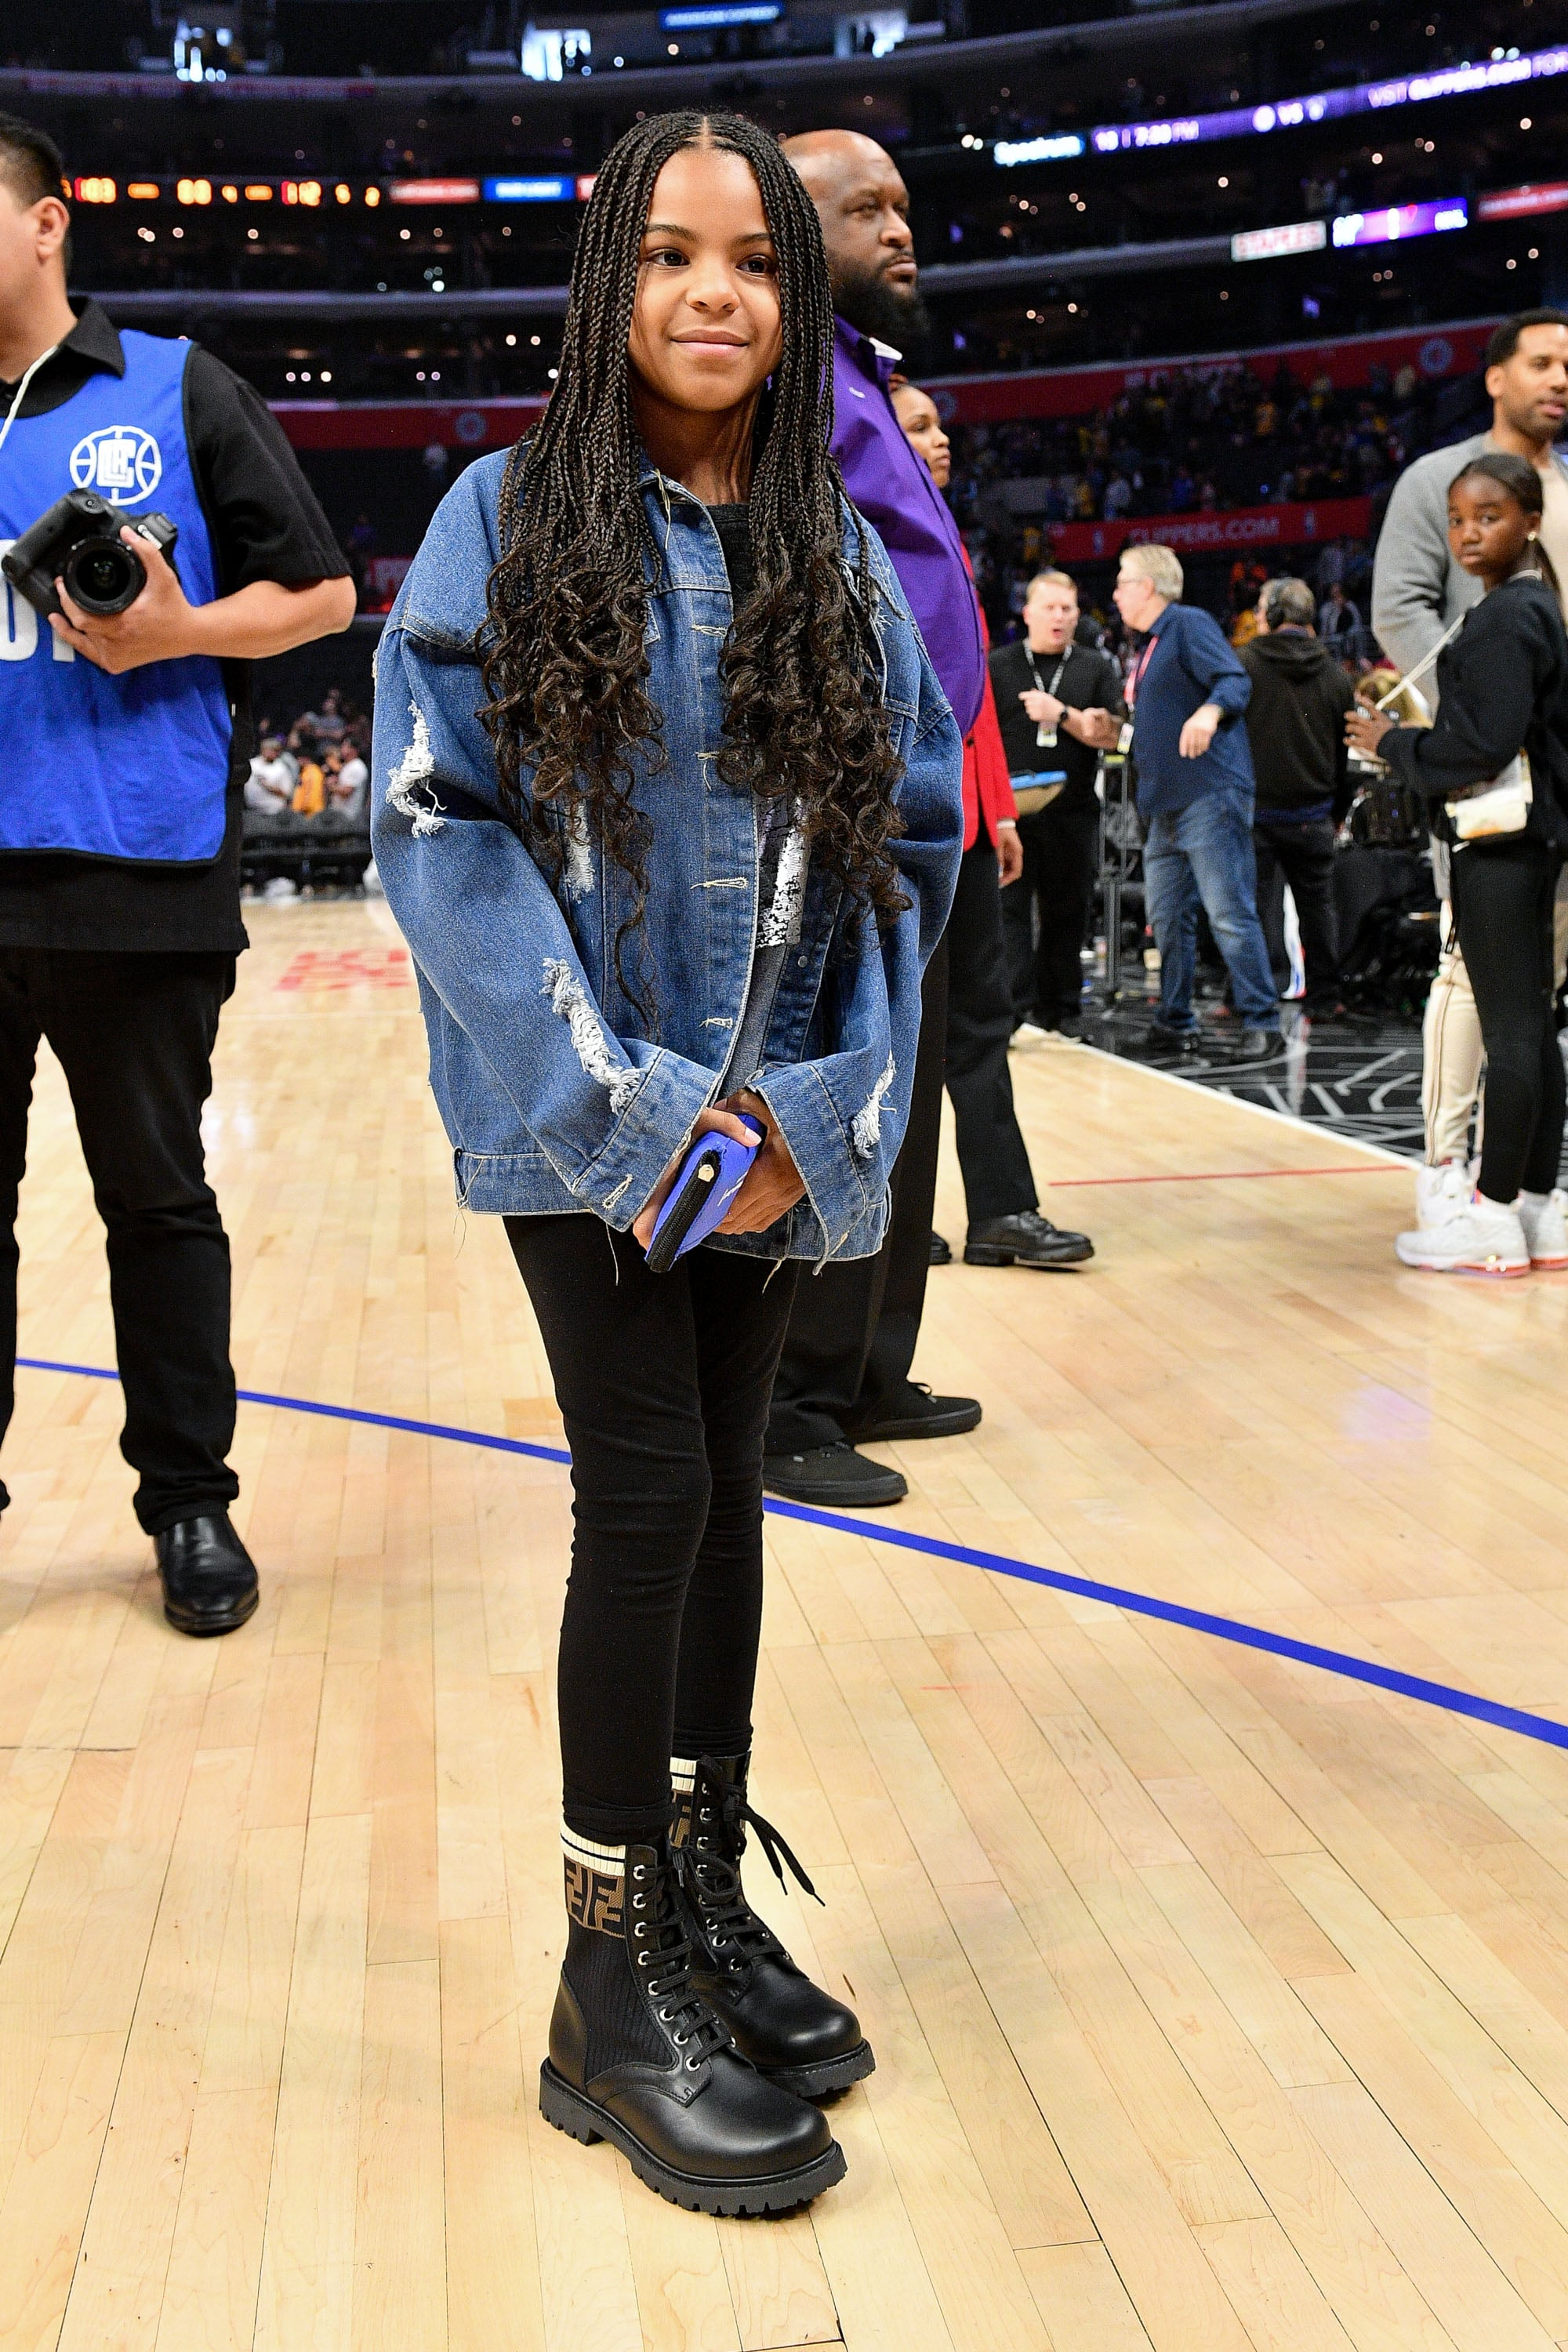 LOS ANGELES, CALIFORNIA - MARCH 08: Blue Ivy Carter attends a basketball game between the Los Angeles Clippers and the Los Angeles Lakers at Staples Center on March 08, 2020 in Los Angeles, California. (Photo by Allen Berezovsky/Getty Images)